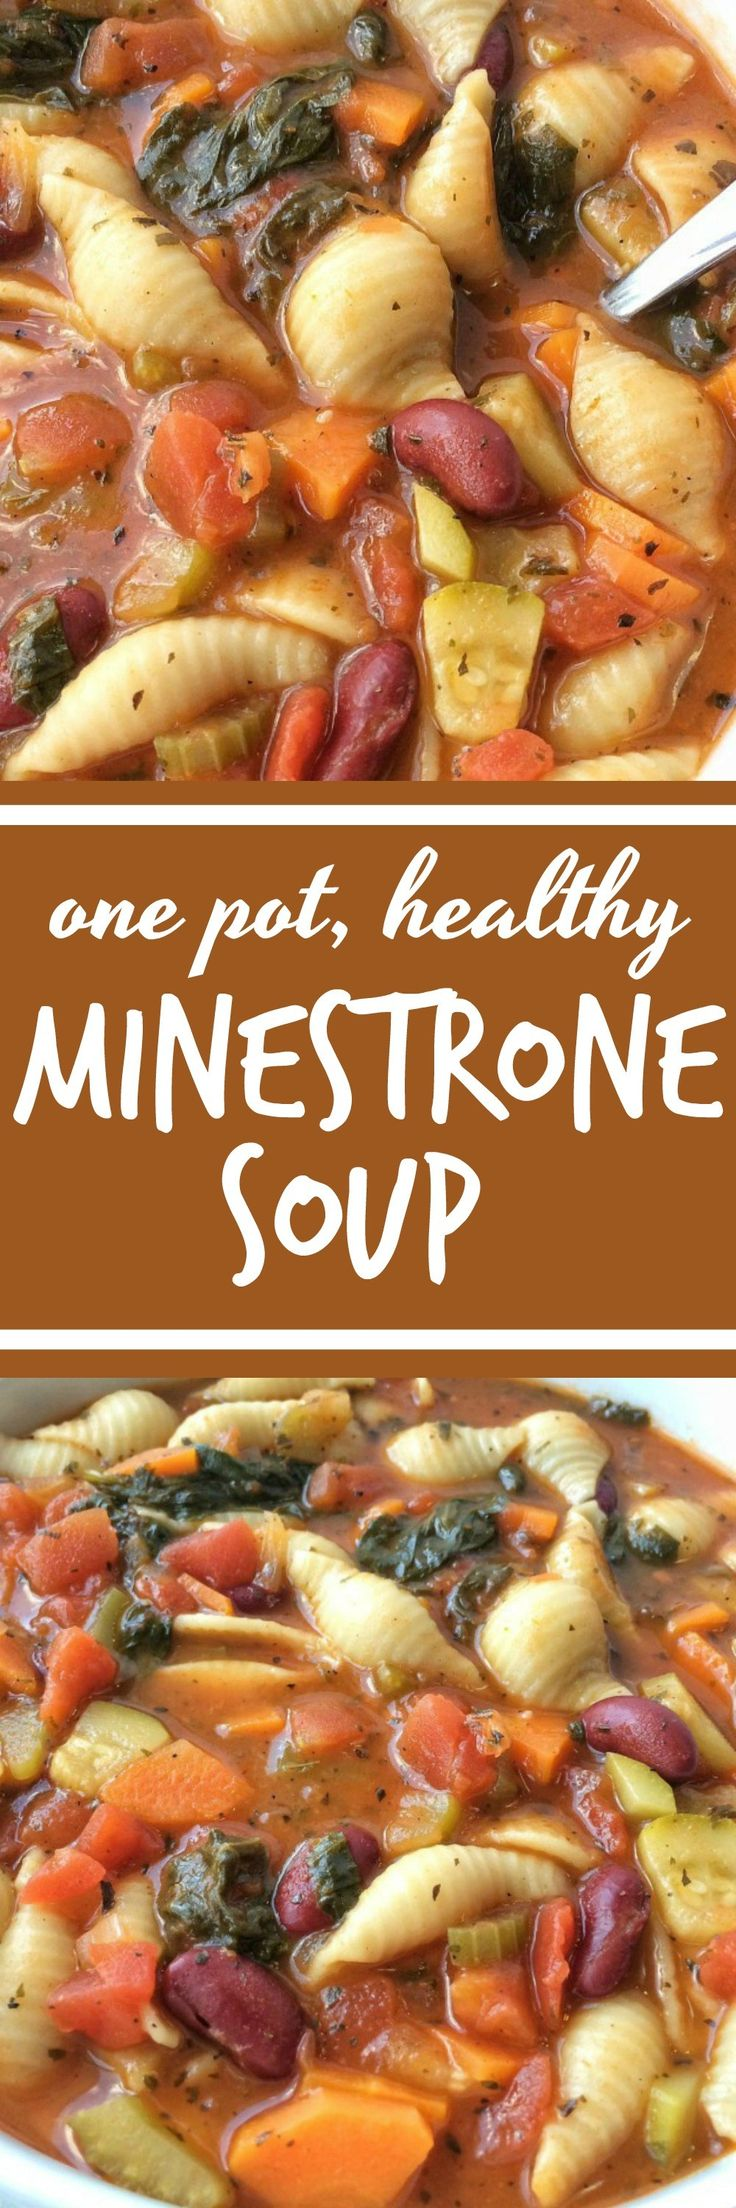 Minestrone Soup | Soup | Soup Recipes | Vegetable Soup | Healthy | Together as Family | #minestronesouprecipes #souprecipes #minestronesoup